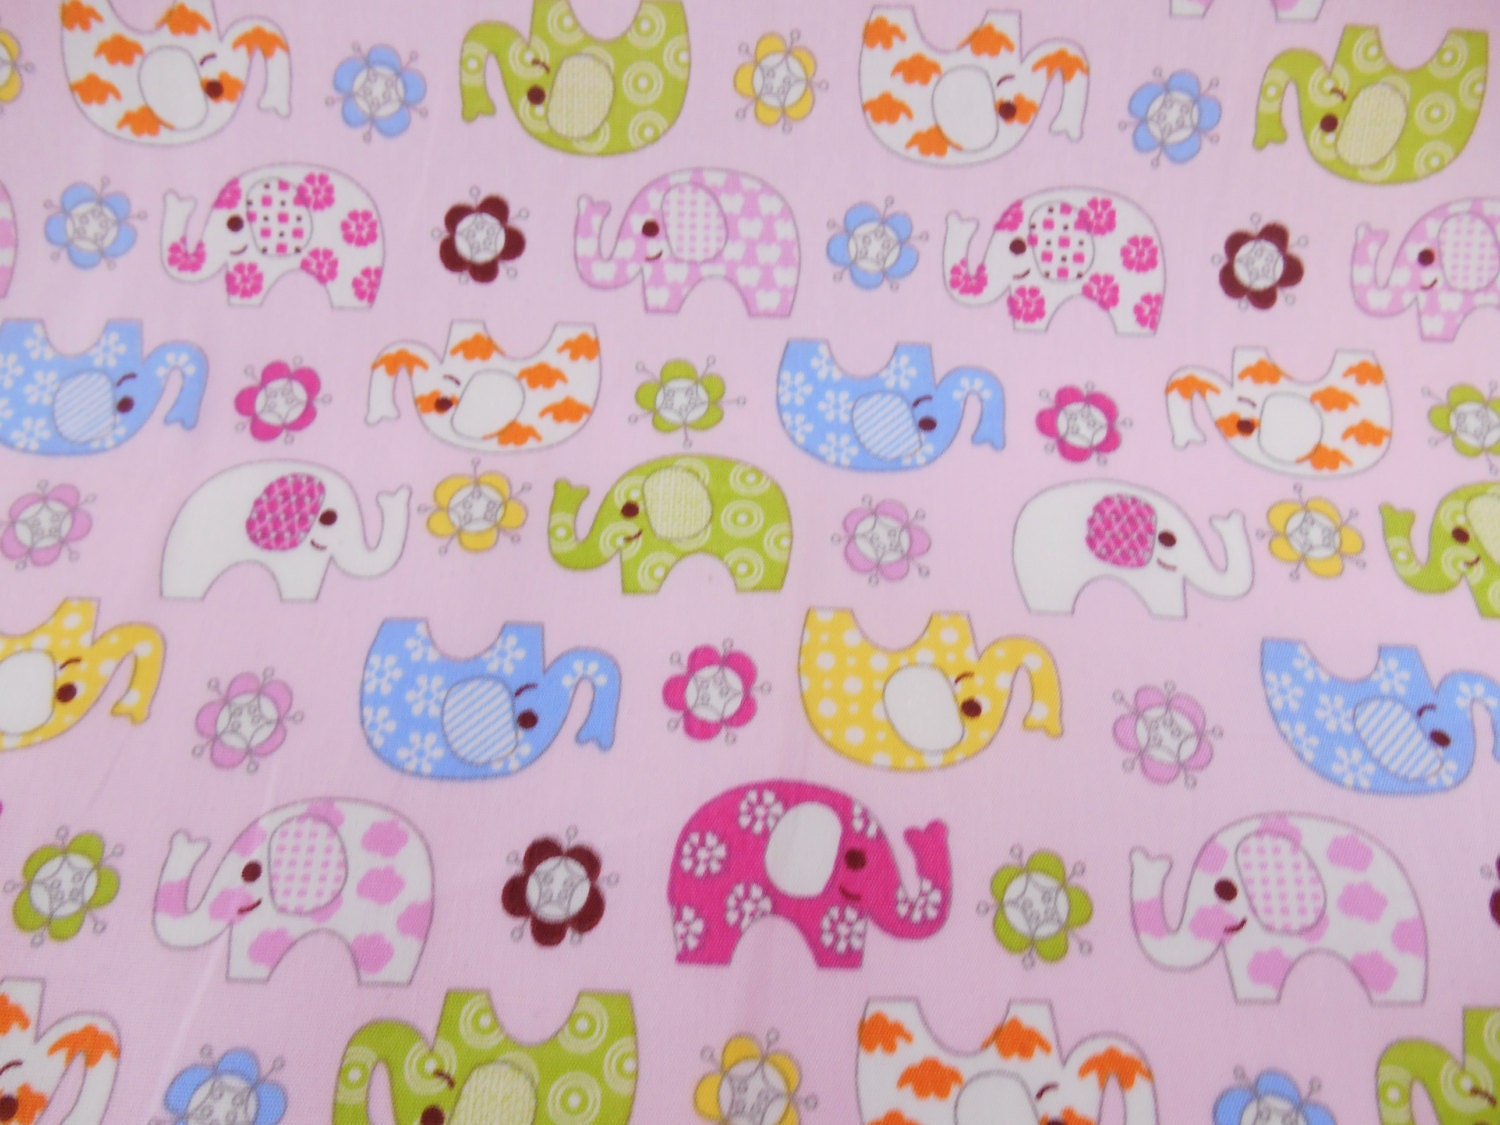 Rose and hubble cotton fabric elephants pink nursery abric for Pink nursery fabric